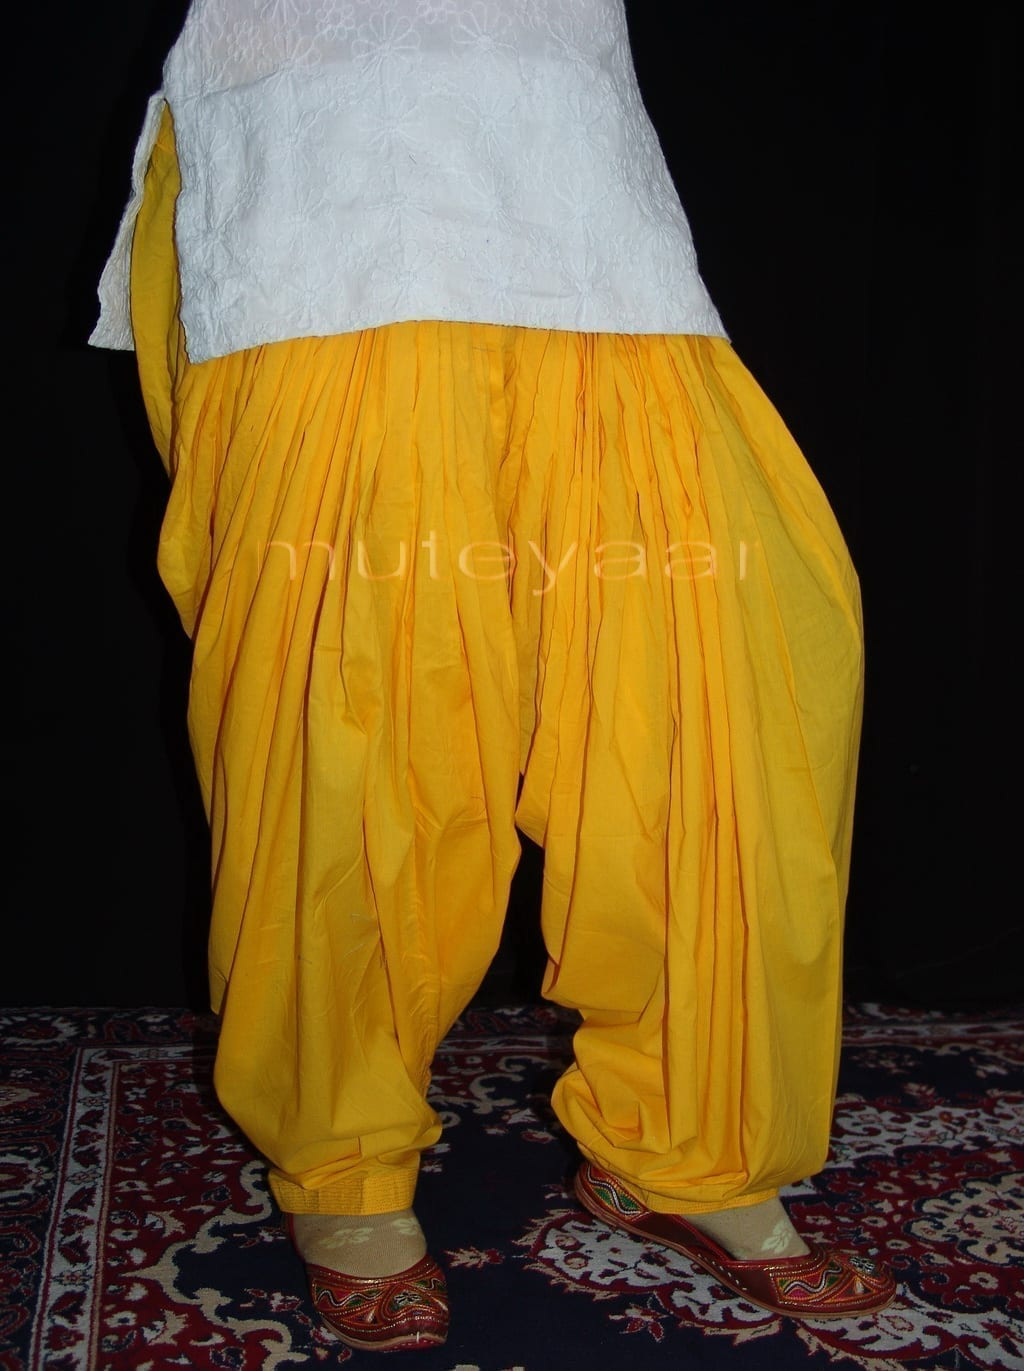 Lot of 25 PURE COTTON free-size Patiala Salwars - Mix colours !! 30